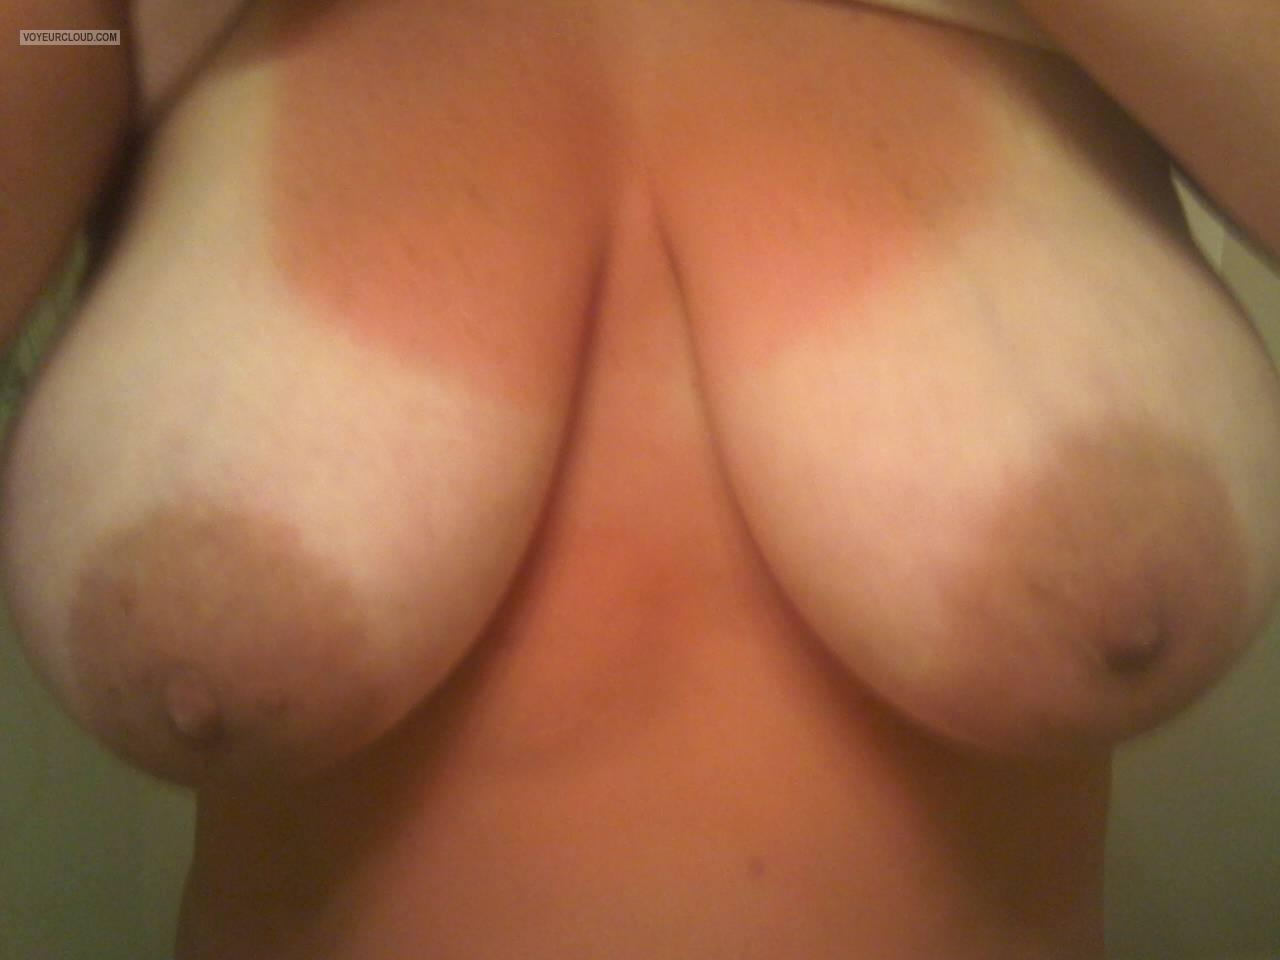 Tit Flash: Wife's Tanlined Very Big Tits - Brittany from United States